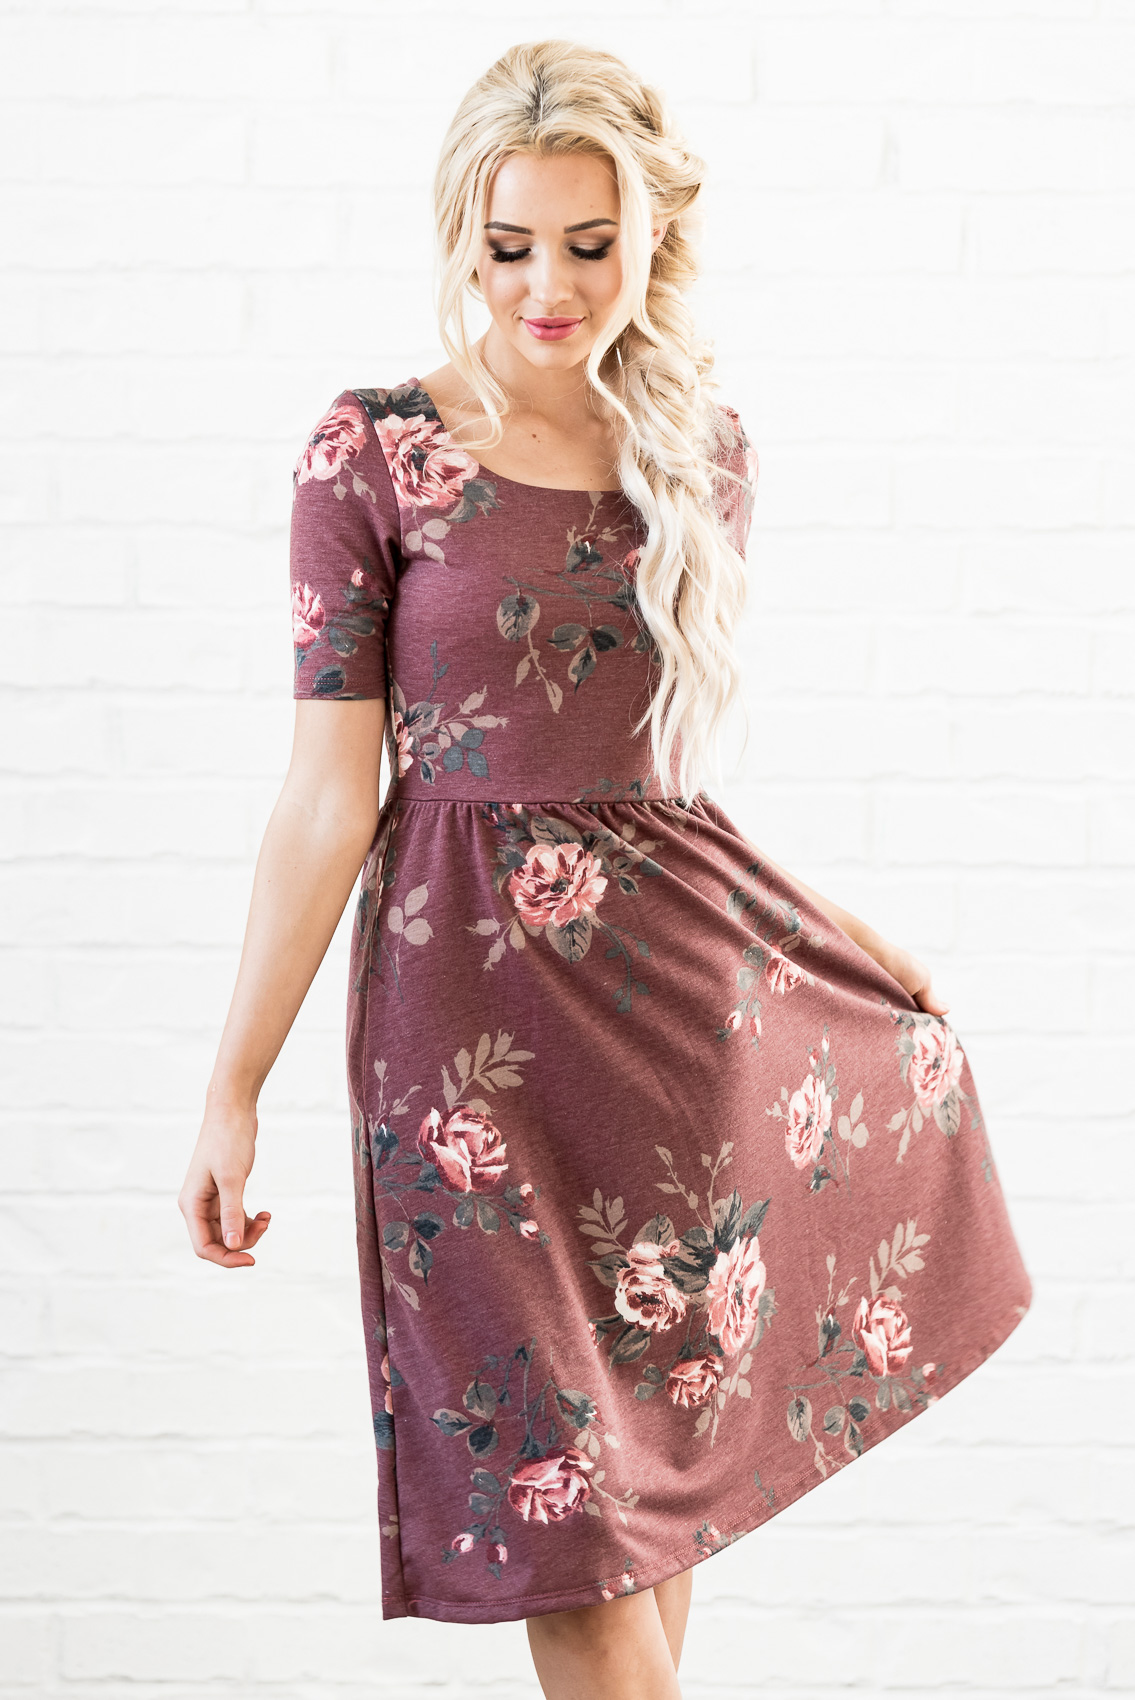 da2525649dcd ... Natalie Modest Dress in Red Bean (aka Dusty Burgundy or Maroon) with Floral  Print ...